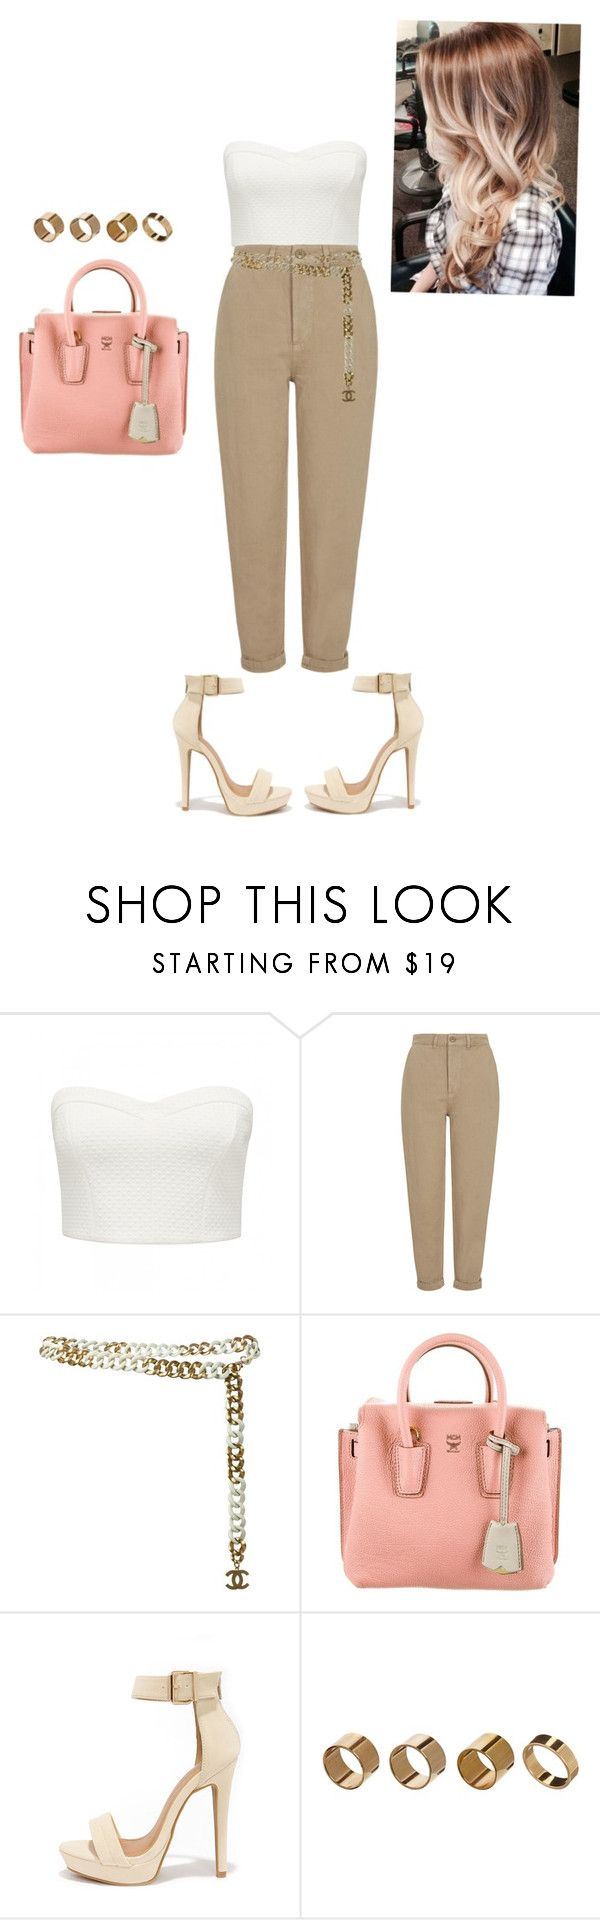 """""""Untitled #195"""" by kevinharris ❤ liked on Polyvore featuring Forever New, Topshop, Chanel, MCM, Shoe Republic LA and Warehouse"""